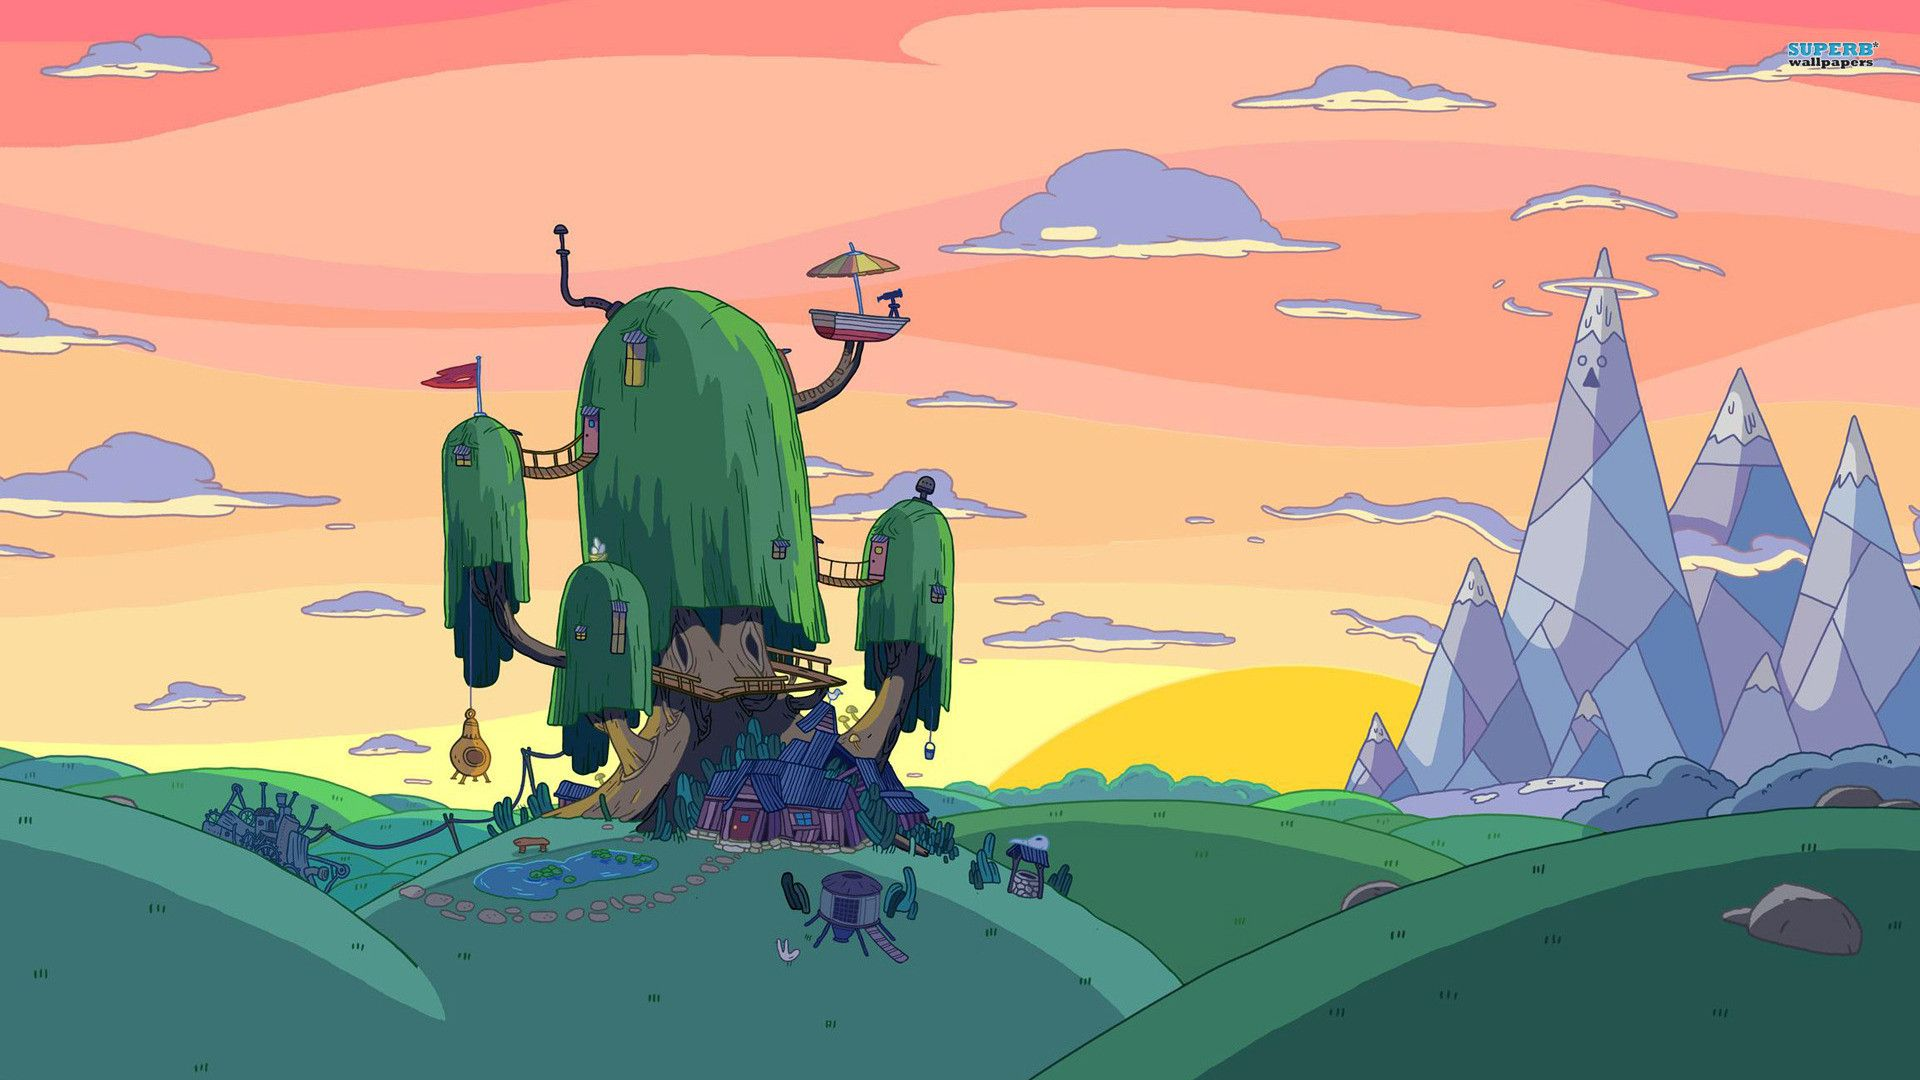 Adventure Time Adventure Time Wallpaper Adventure Time Background Adventure Time